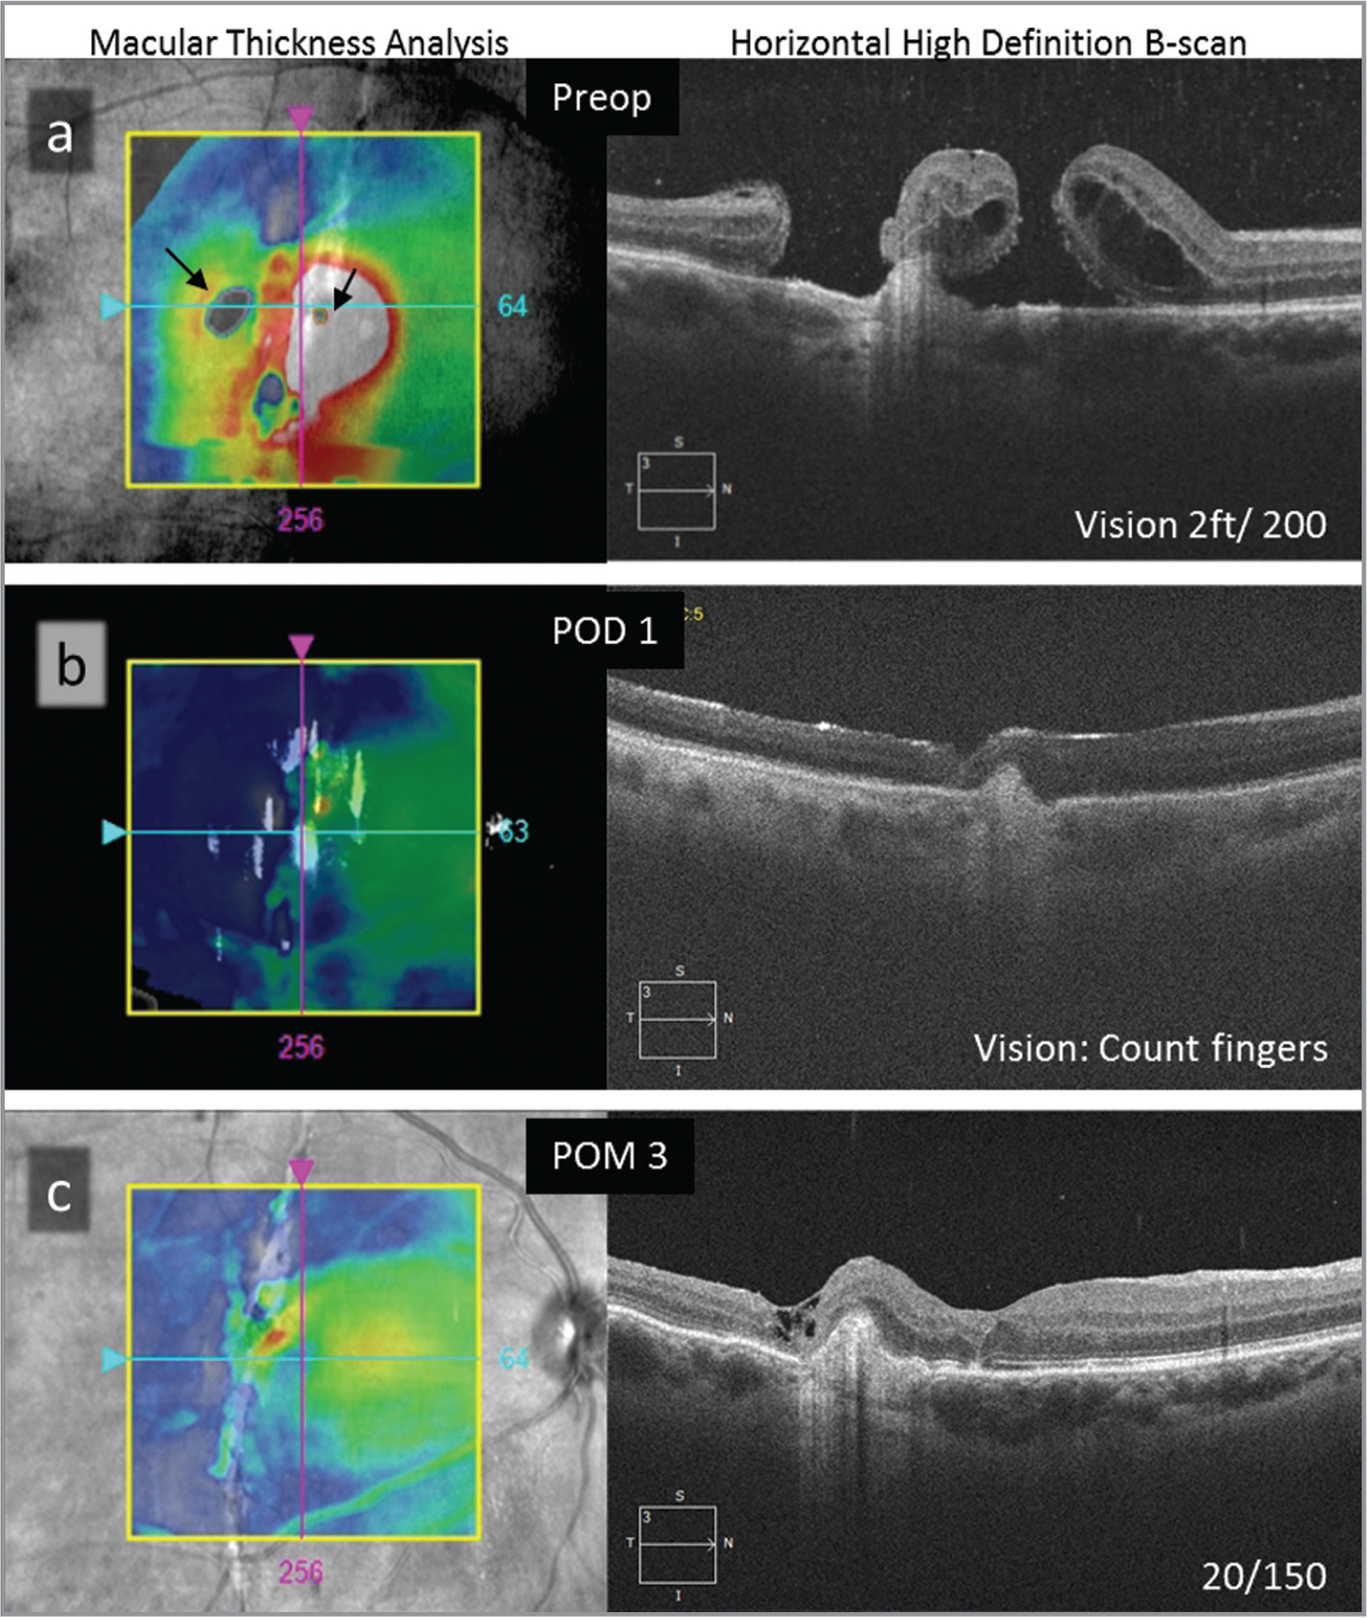 (a) Preoperative optical coherence tomography (OCT) demonstrates two macular holes overlying a choroidal rupture. (b) OCT under C3F8 on postop day 1. (c) Optical coherence tomography 3 months after surgery.